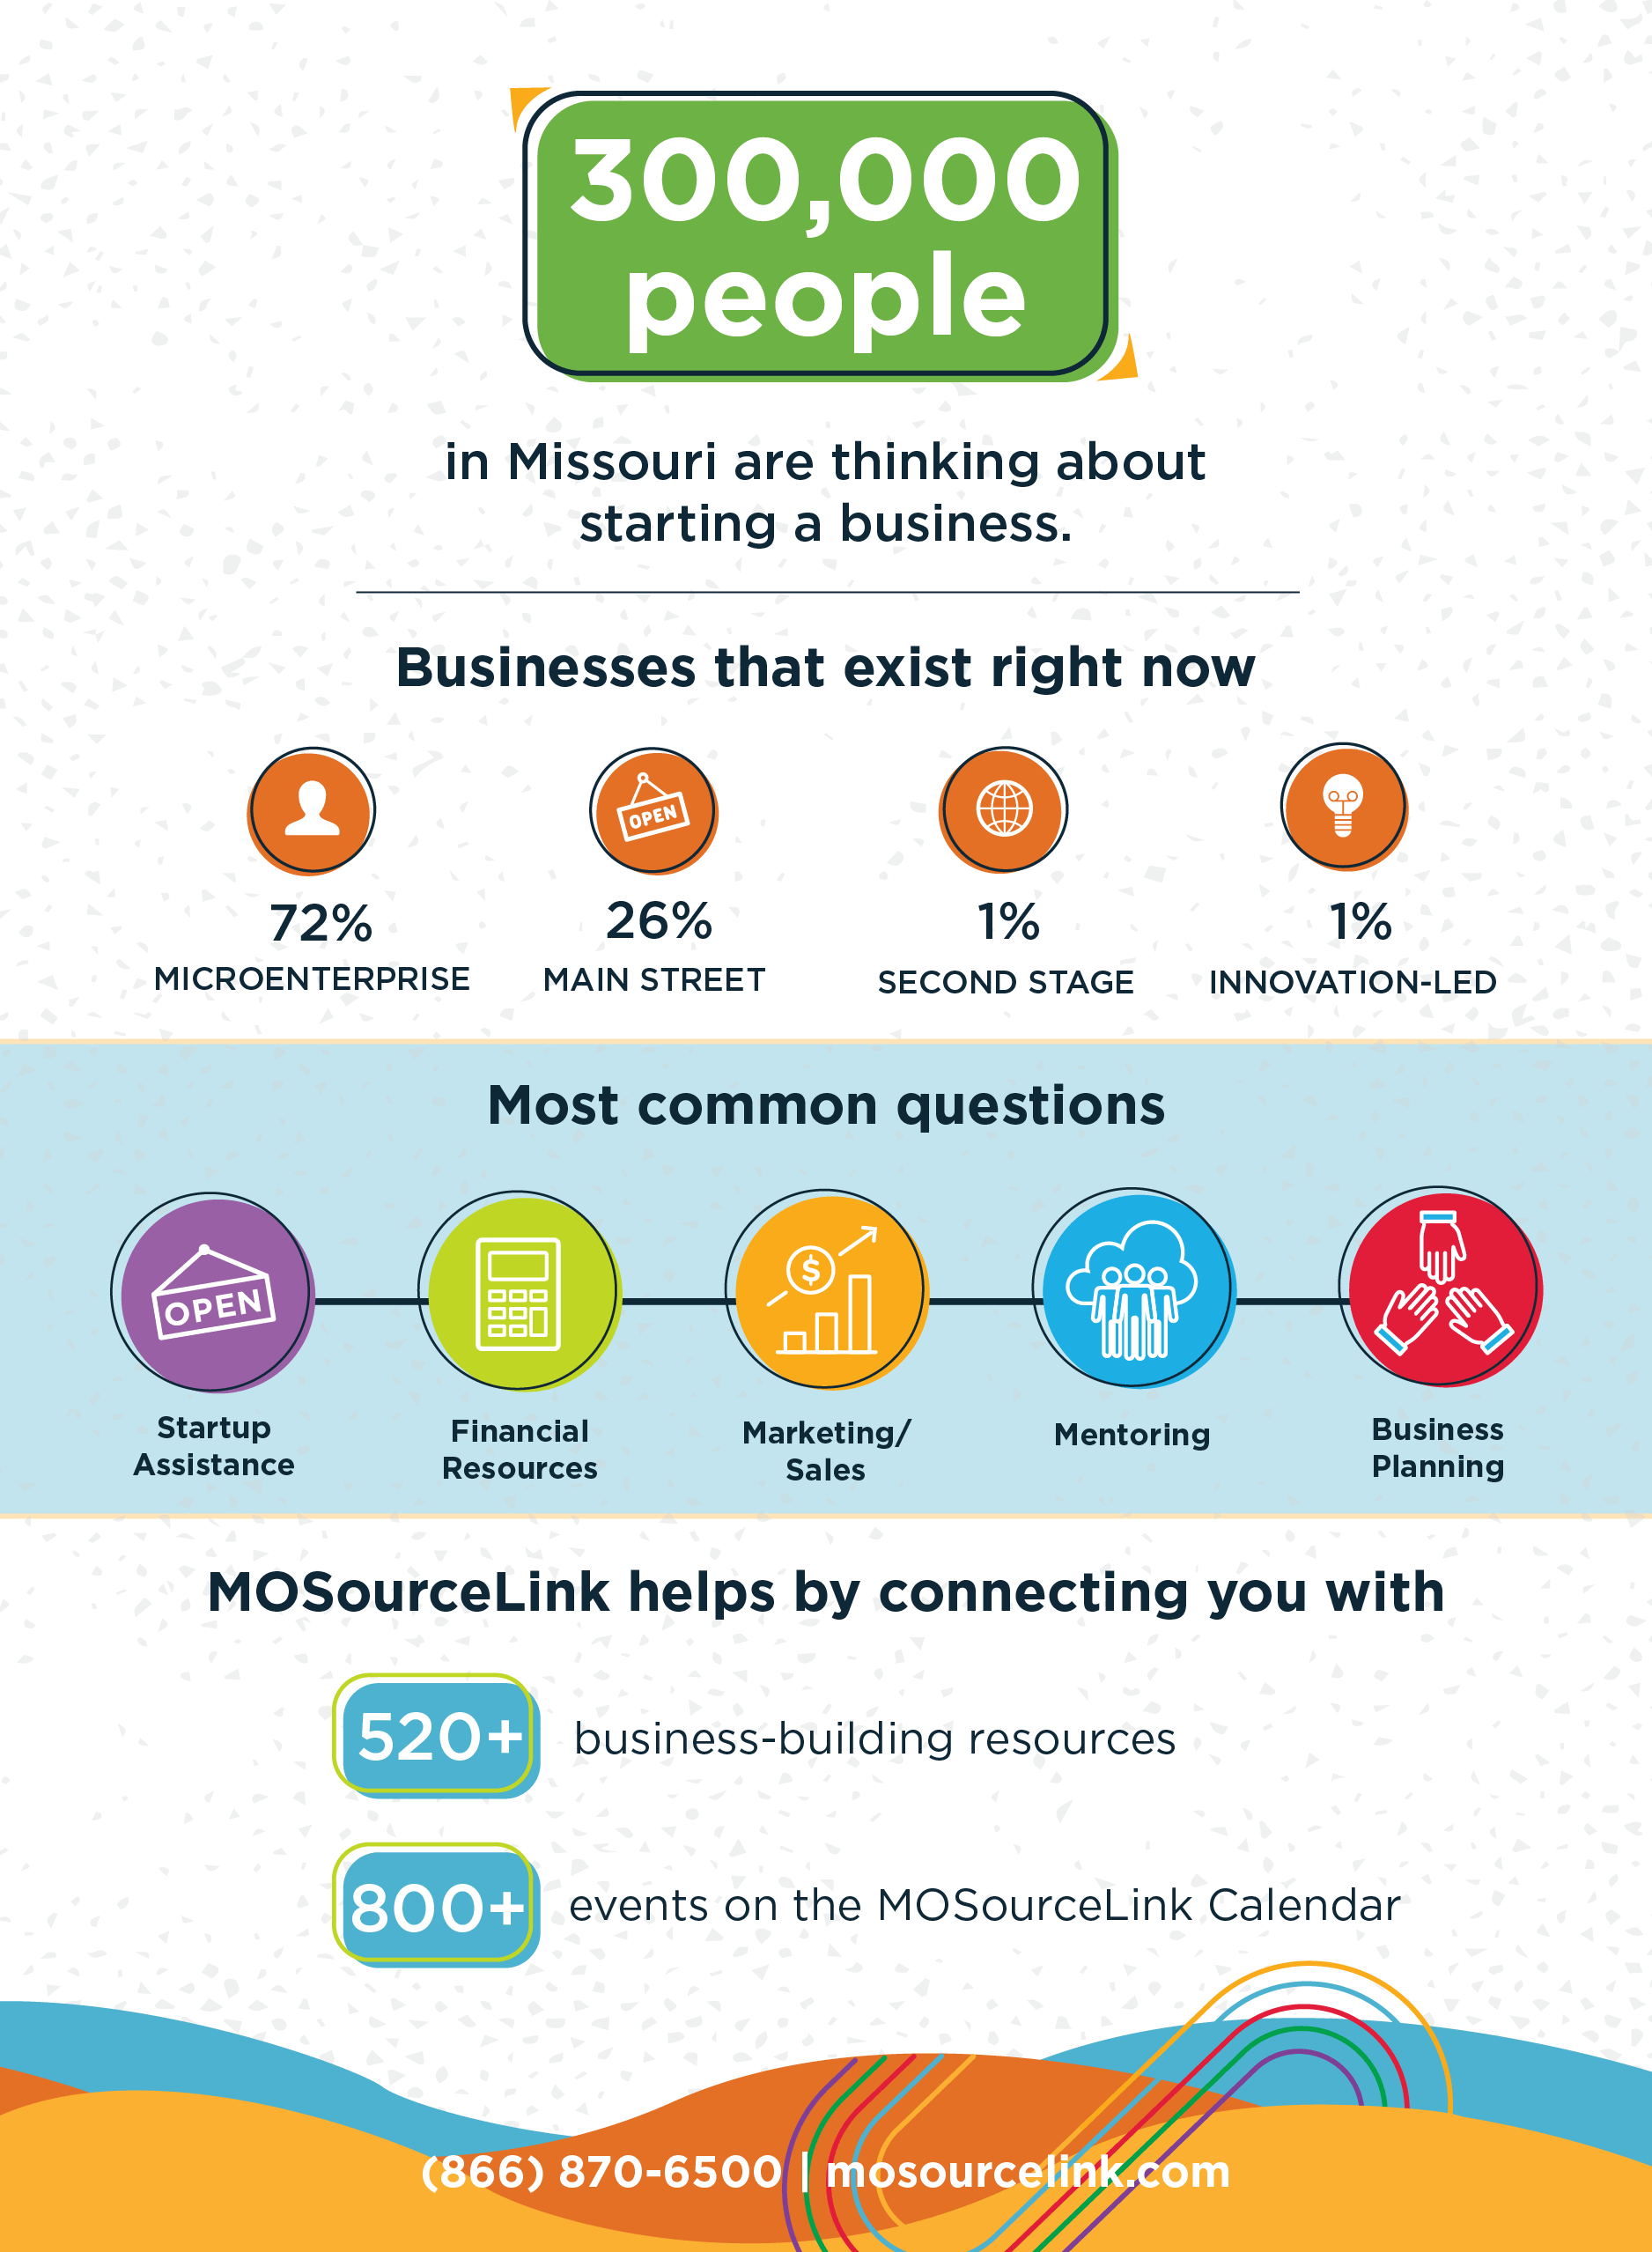 MOSourceLink 2018 Year in Review Infographic